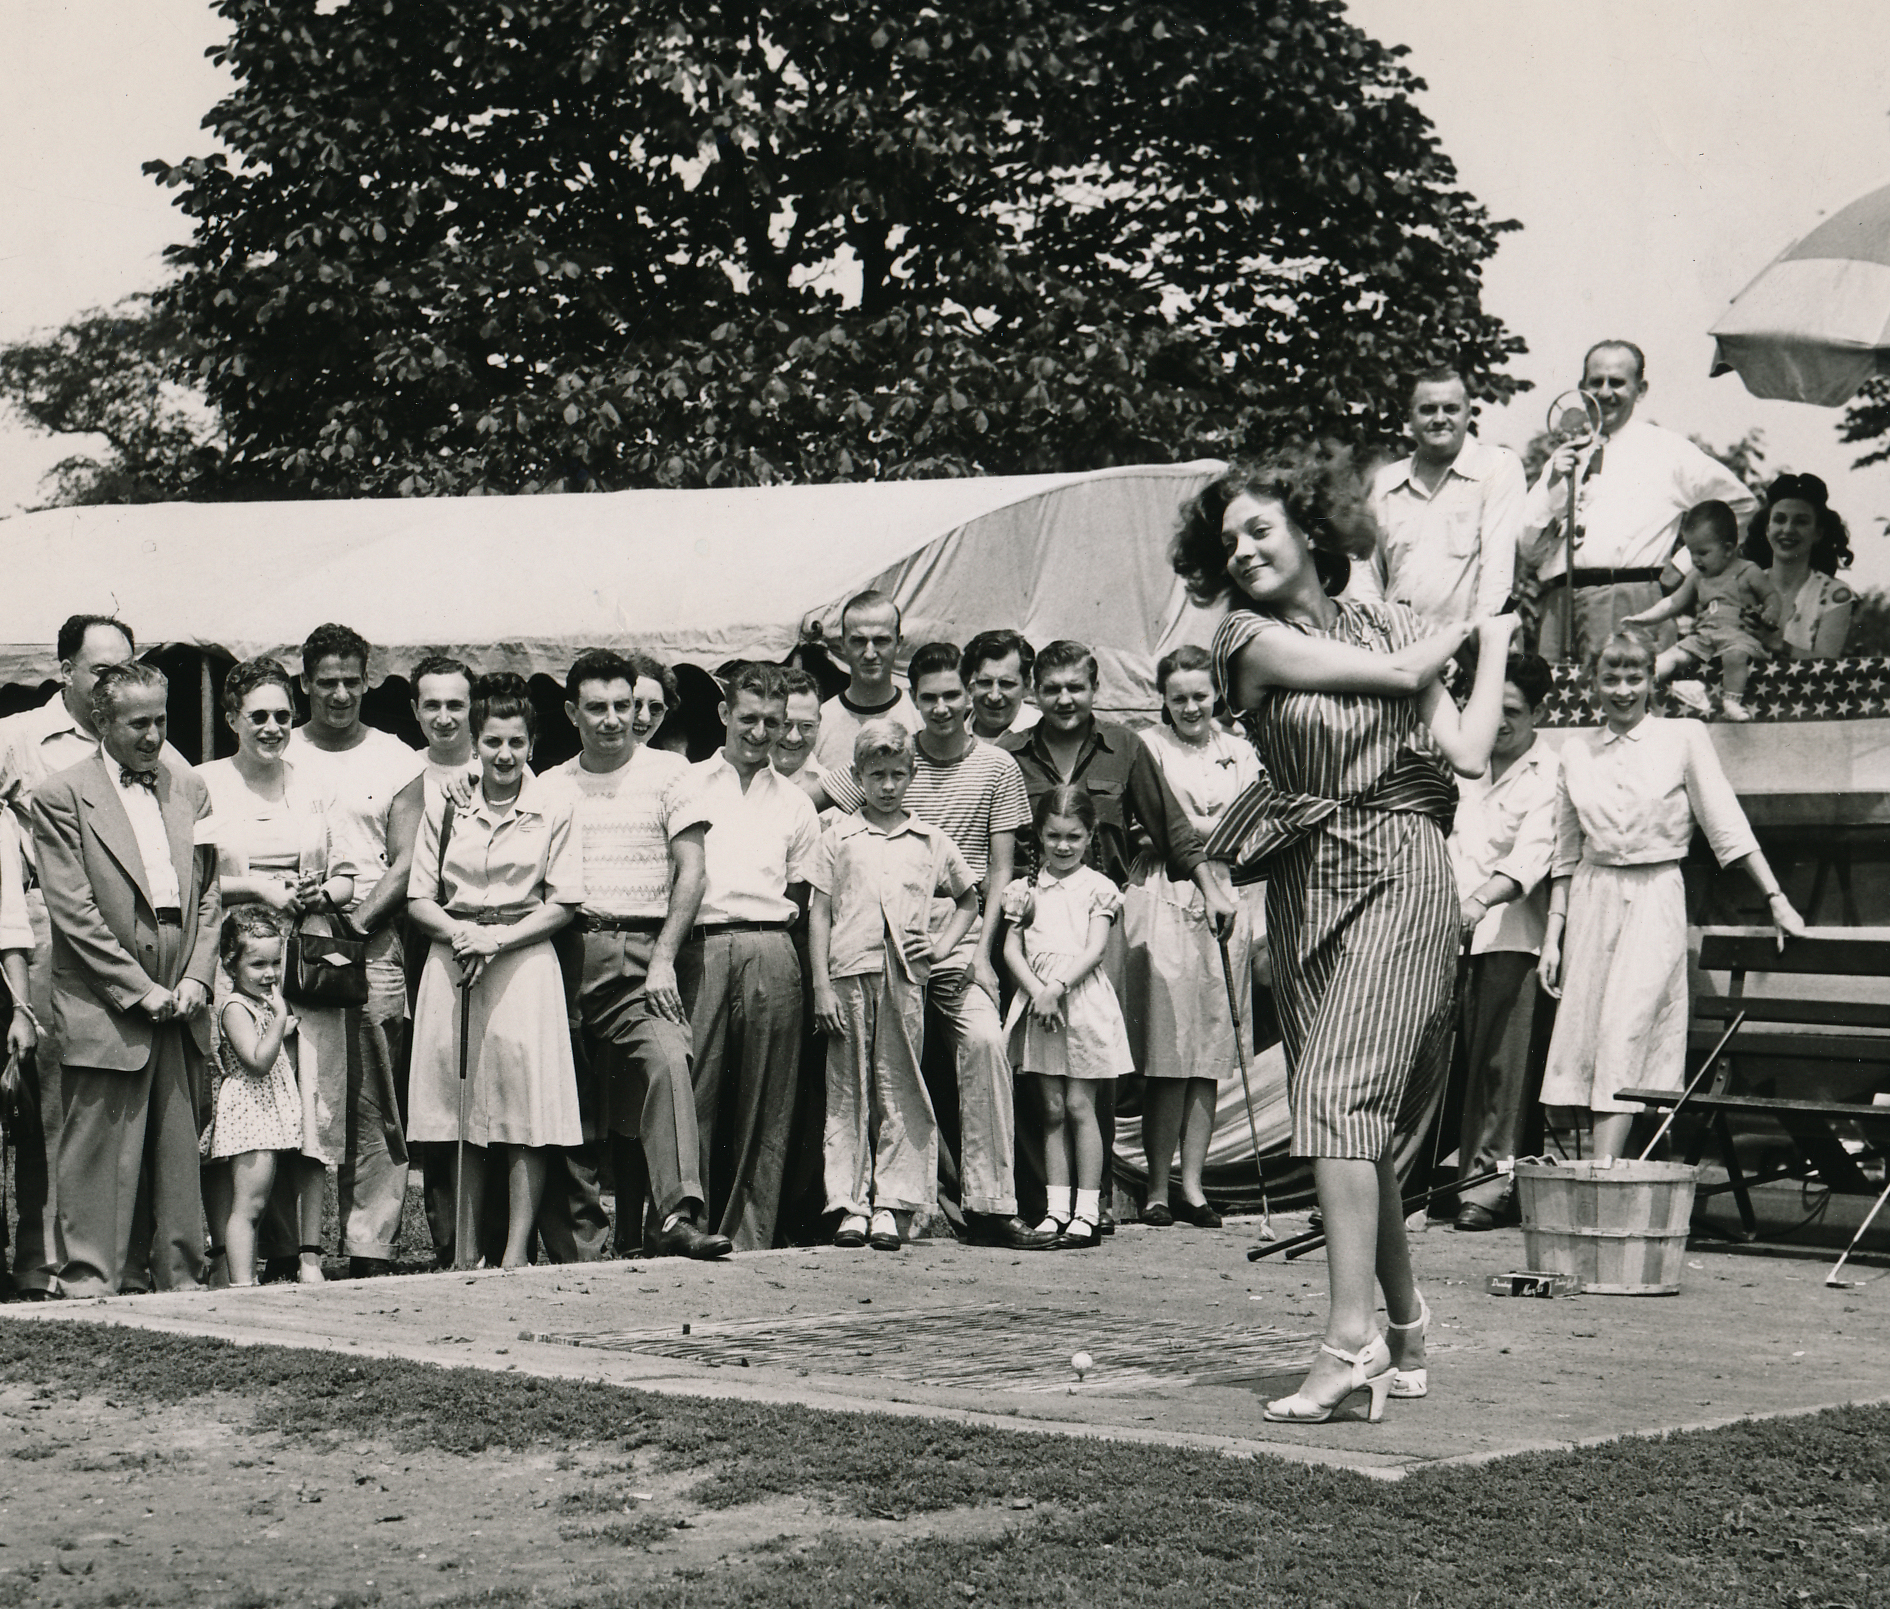 Barbara appearing in the 1947 Dapper Dan Celebrity Golf Tournament in Pittsburgh, when she whiffed her first tee shot.